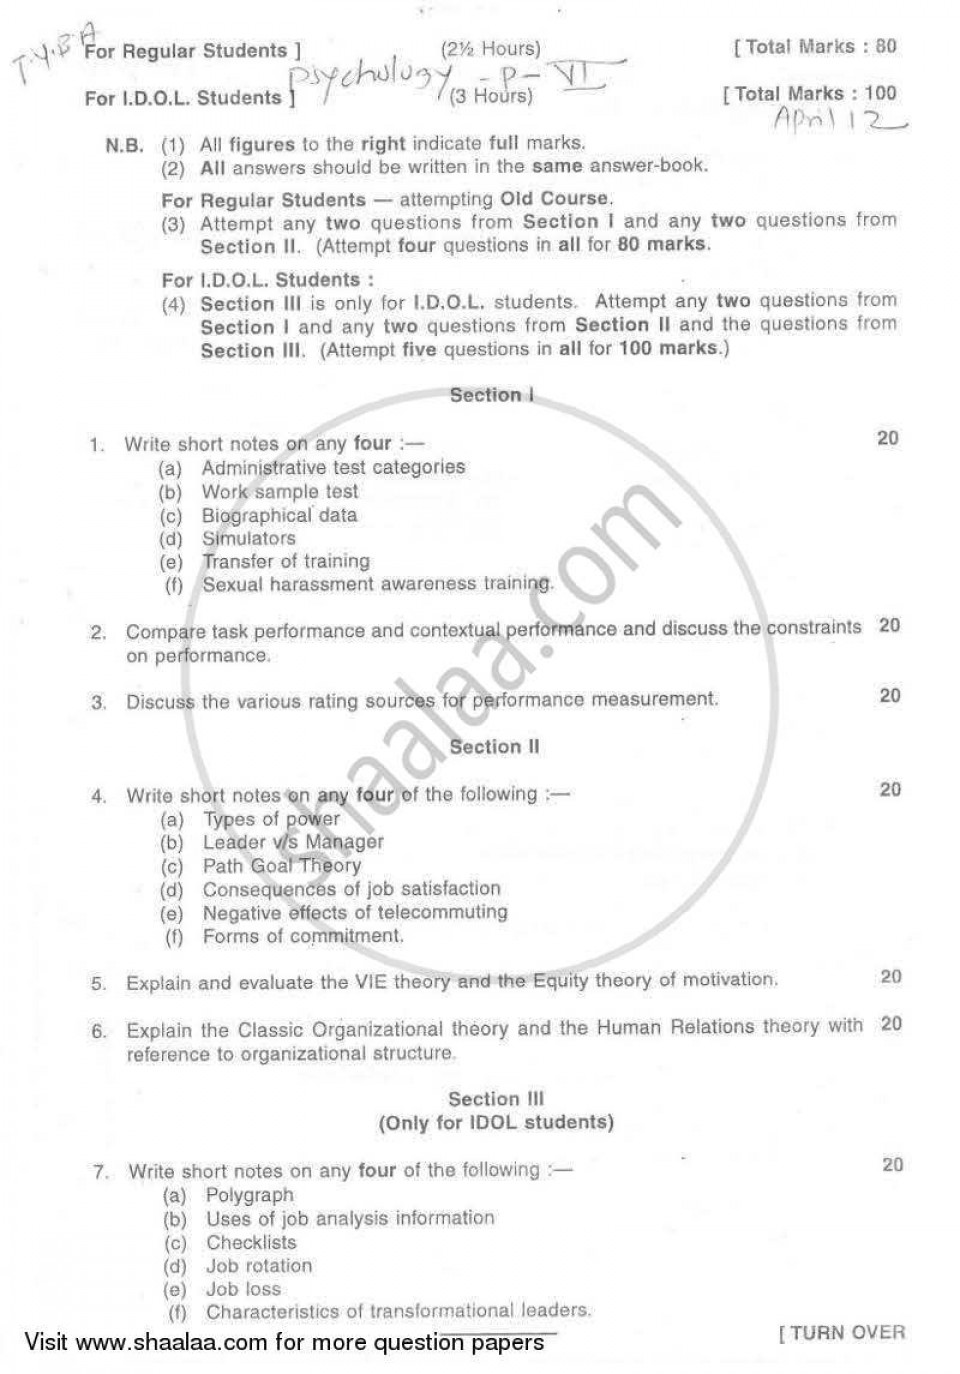 017 Psychologyearch Paper On Dreams University Of Mumbai Bachelor Industrial Organizational T Y Yearly Pattern Semester Tyba 2011 29a03925dfc524f2aa4cb10e4d3da996a Singular Psychology Research Questions Topics 960